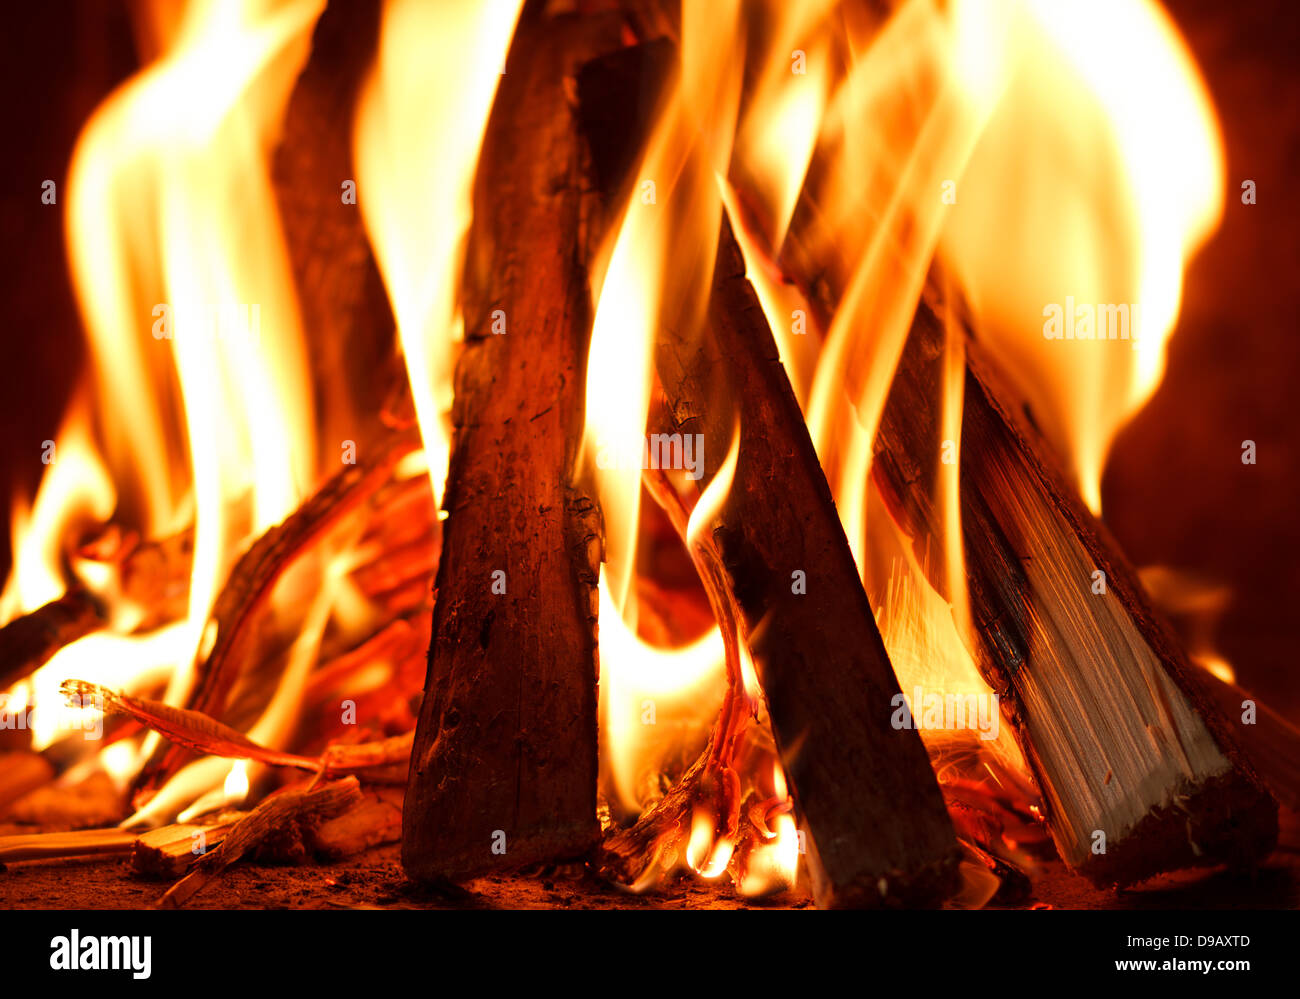 Close up of firewood burning in fire - Stock Image